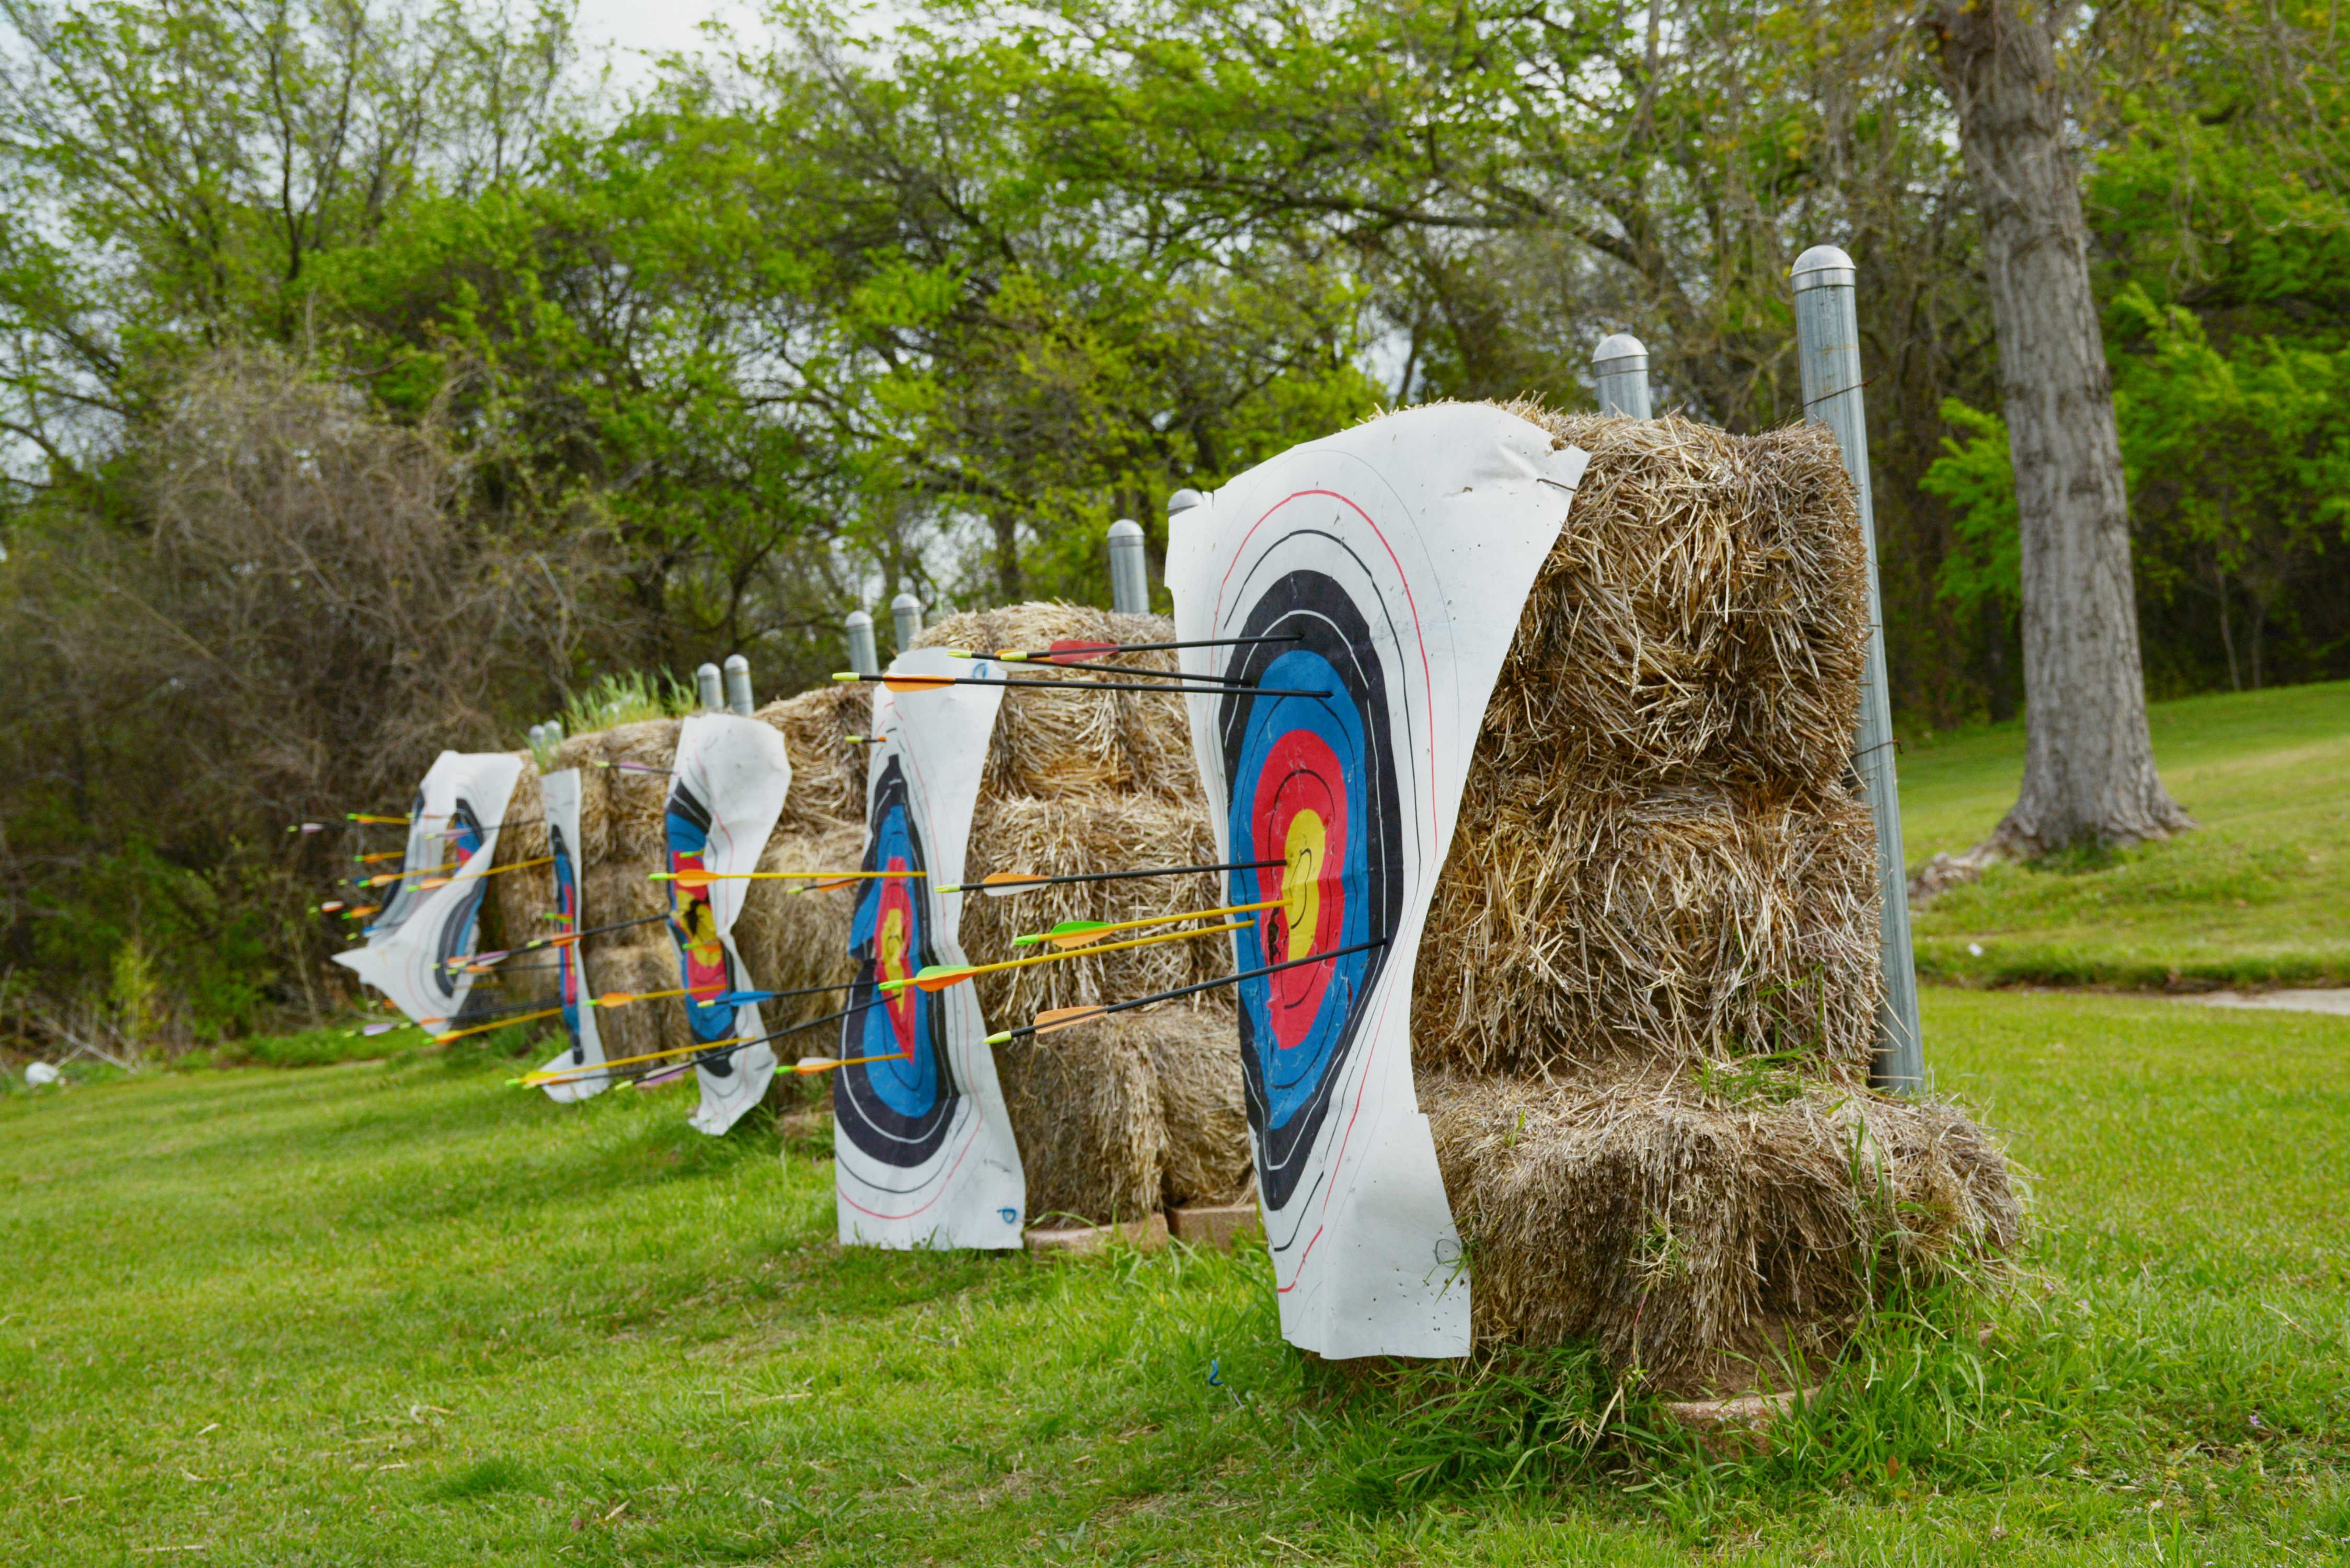 Gregorio Hernandez, Brookhaven College physical education instructor, gives his archery class a challenge – each student must shoot once per target, and the class total must beat 150 points. The class scored 175 points.